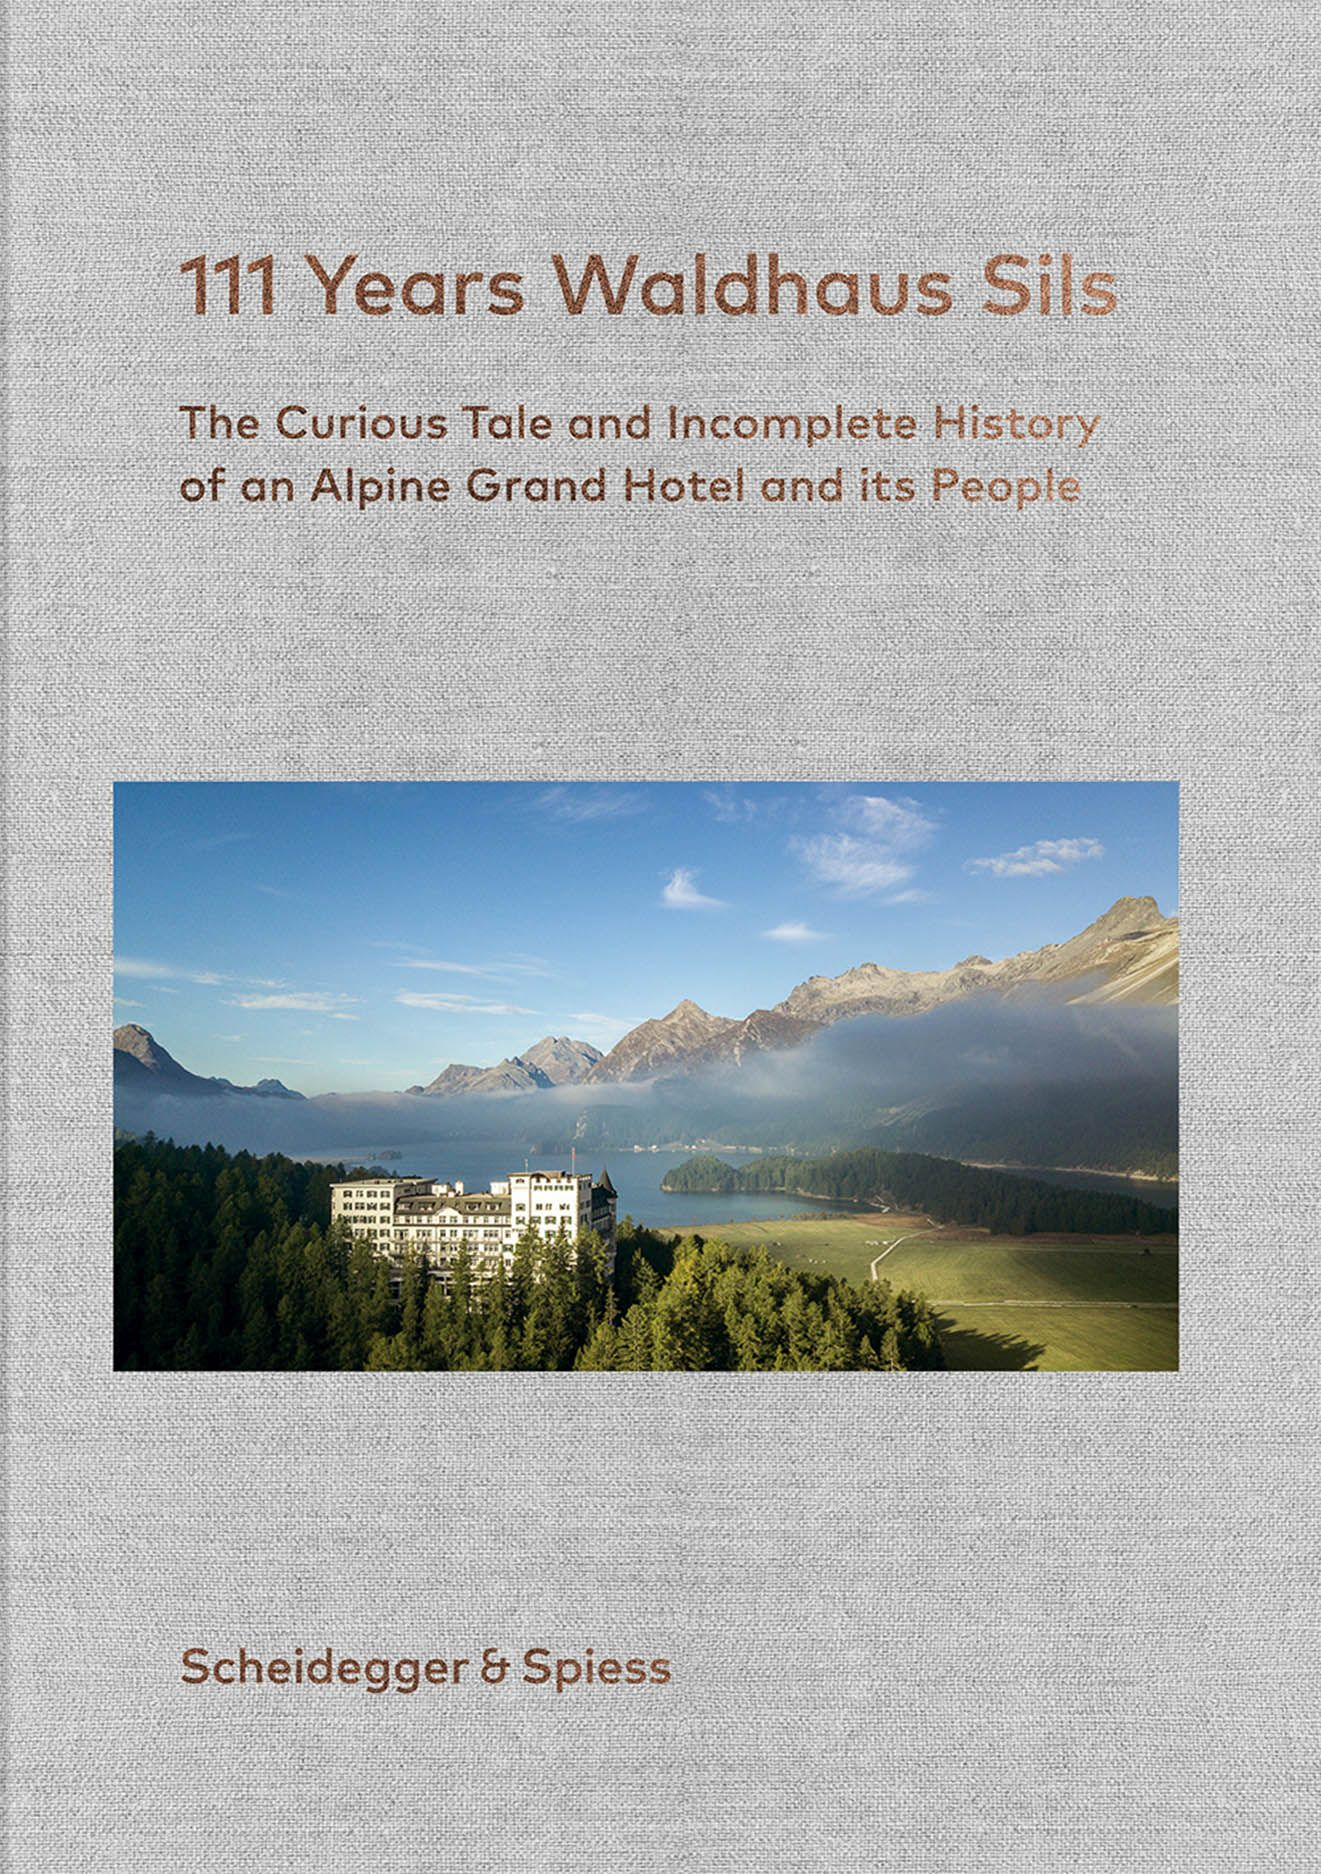 111 Years Waldhaus Sils: The Curious Tale and Incomplete History of an Alpine Grand Hotel and Its People